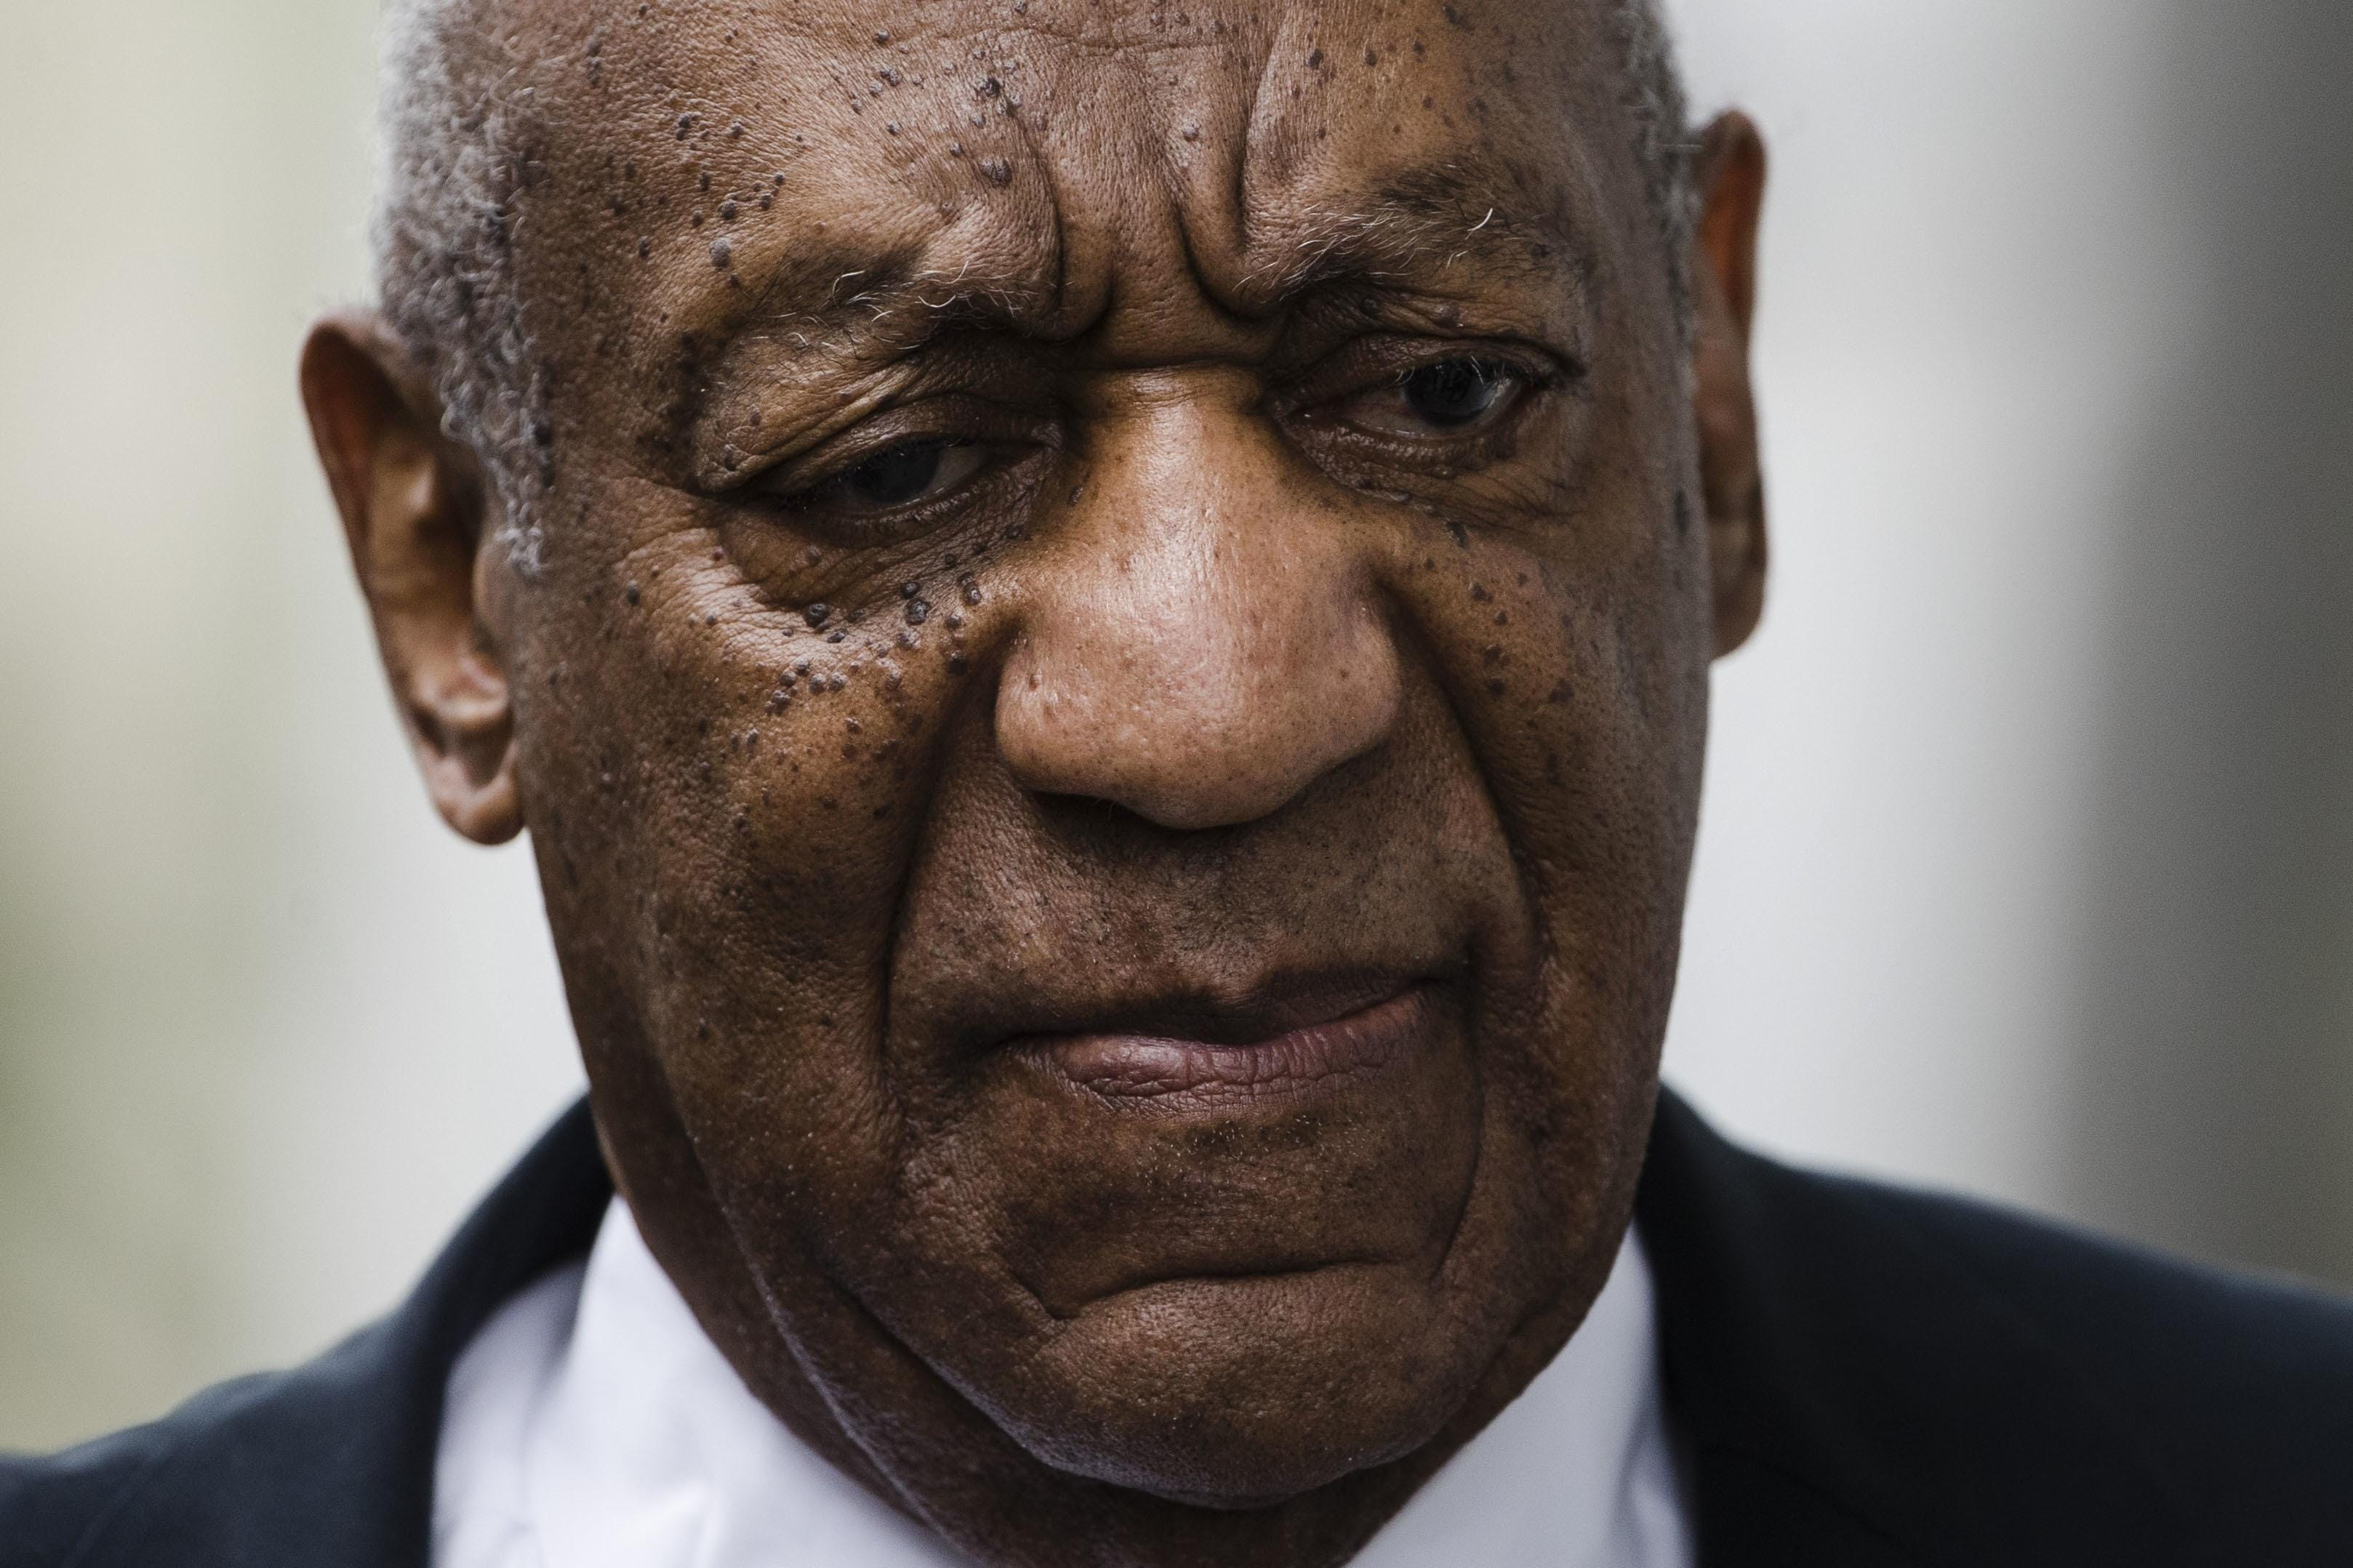 Cosby venue could move to Calif. in sex abuse lawsuit